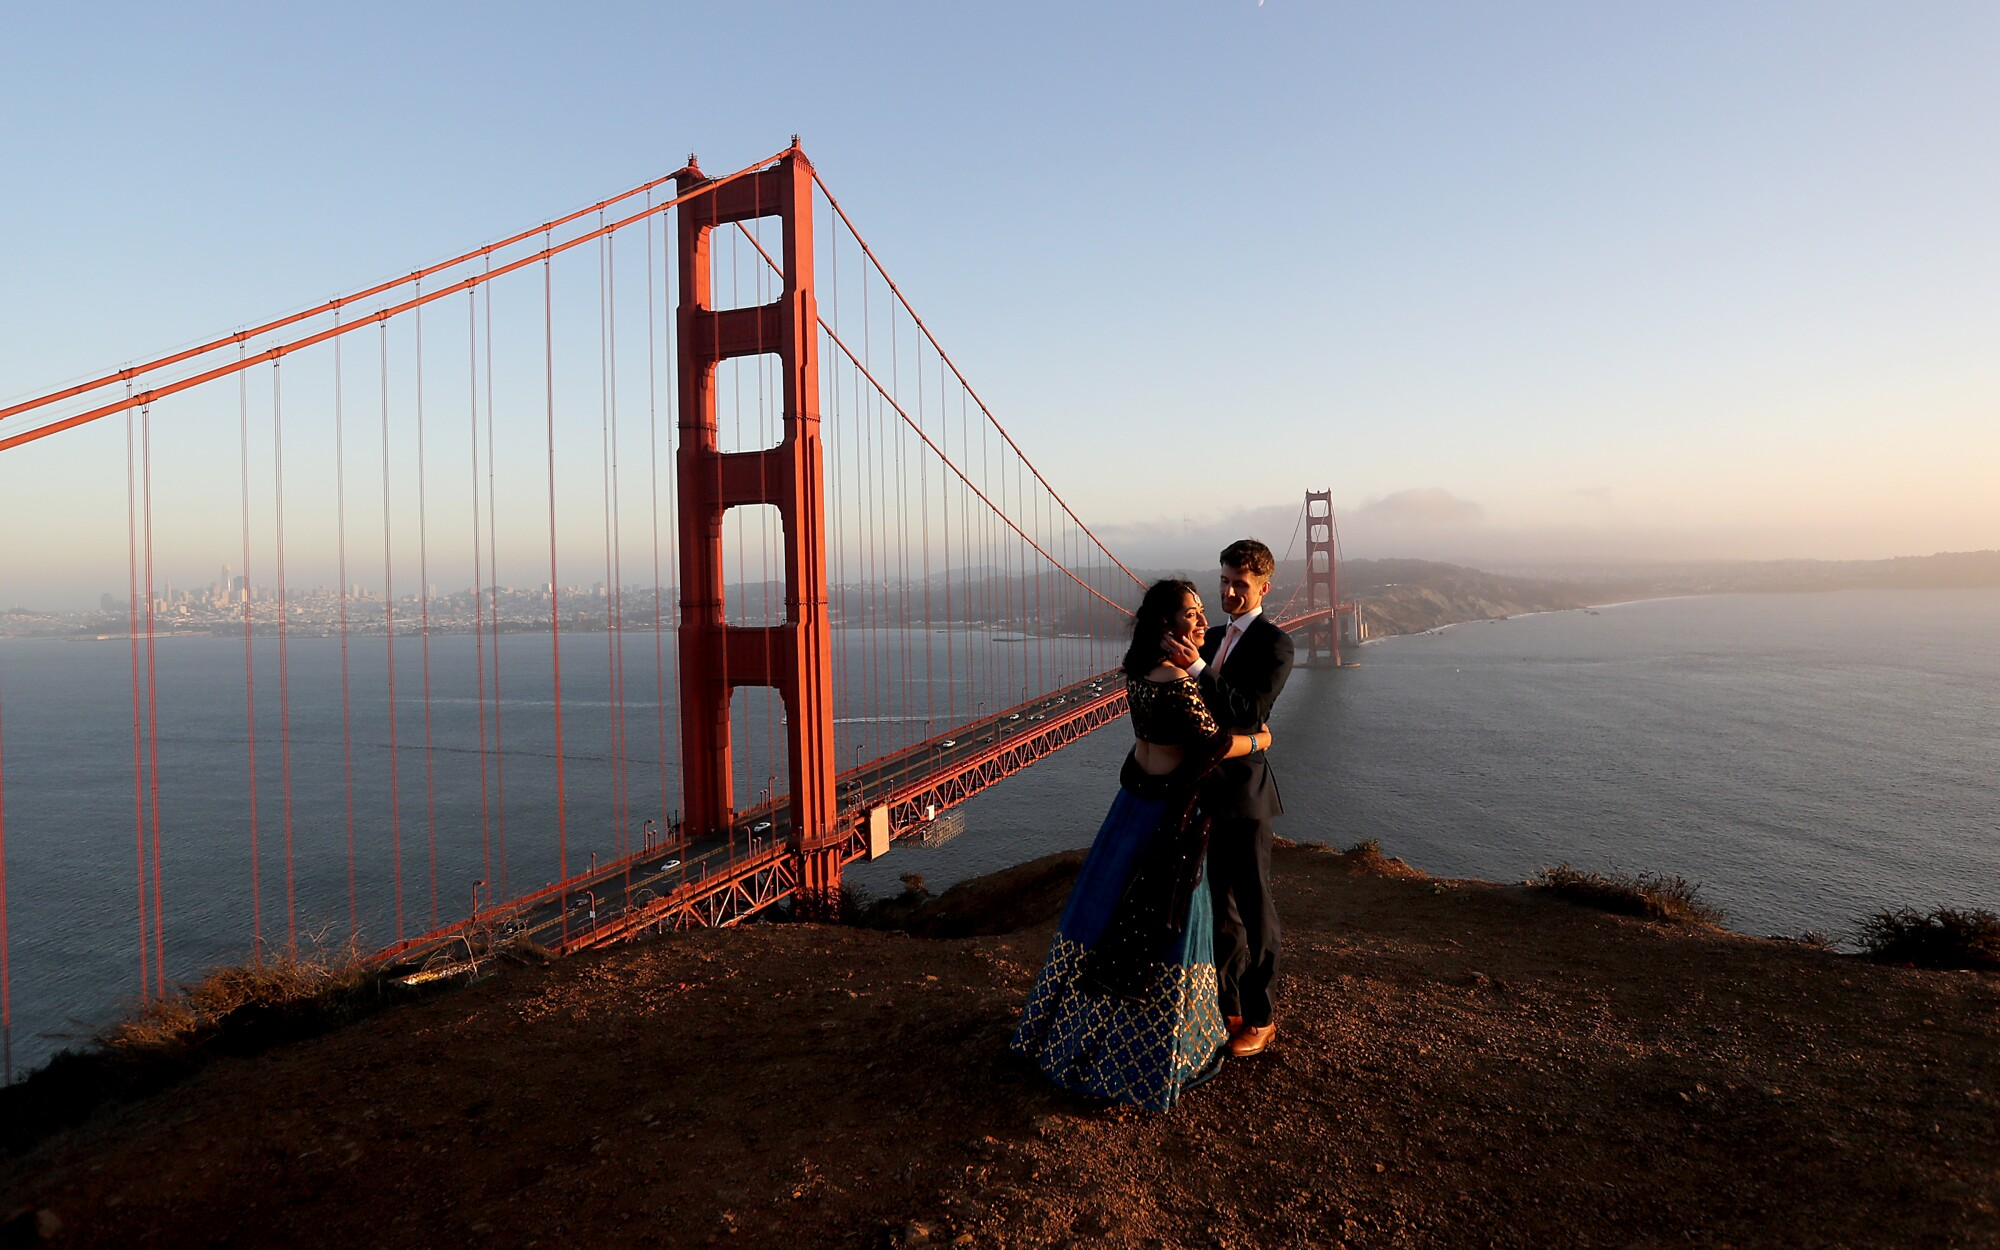 Newlyweds Tulika Jha and Mike Borden take in the sunset at an overlook above the Golden Gate Bridge in San Francisco.